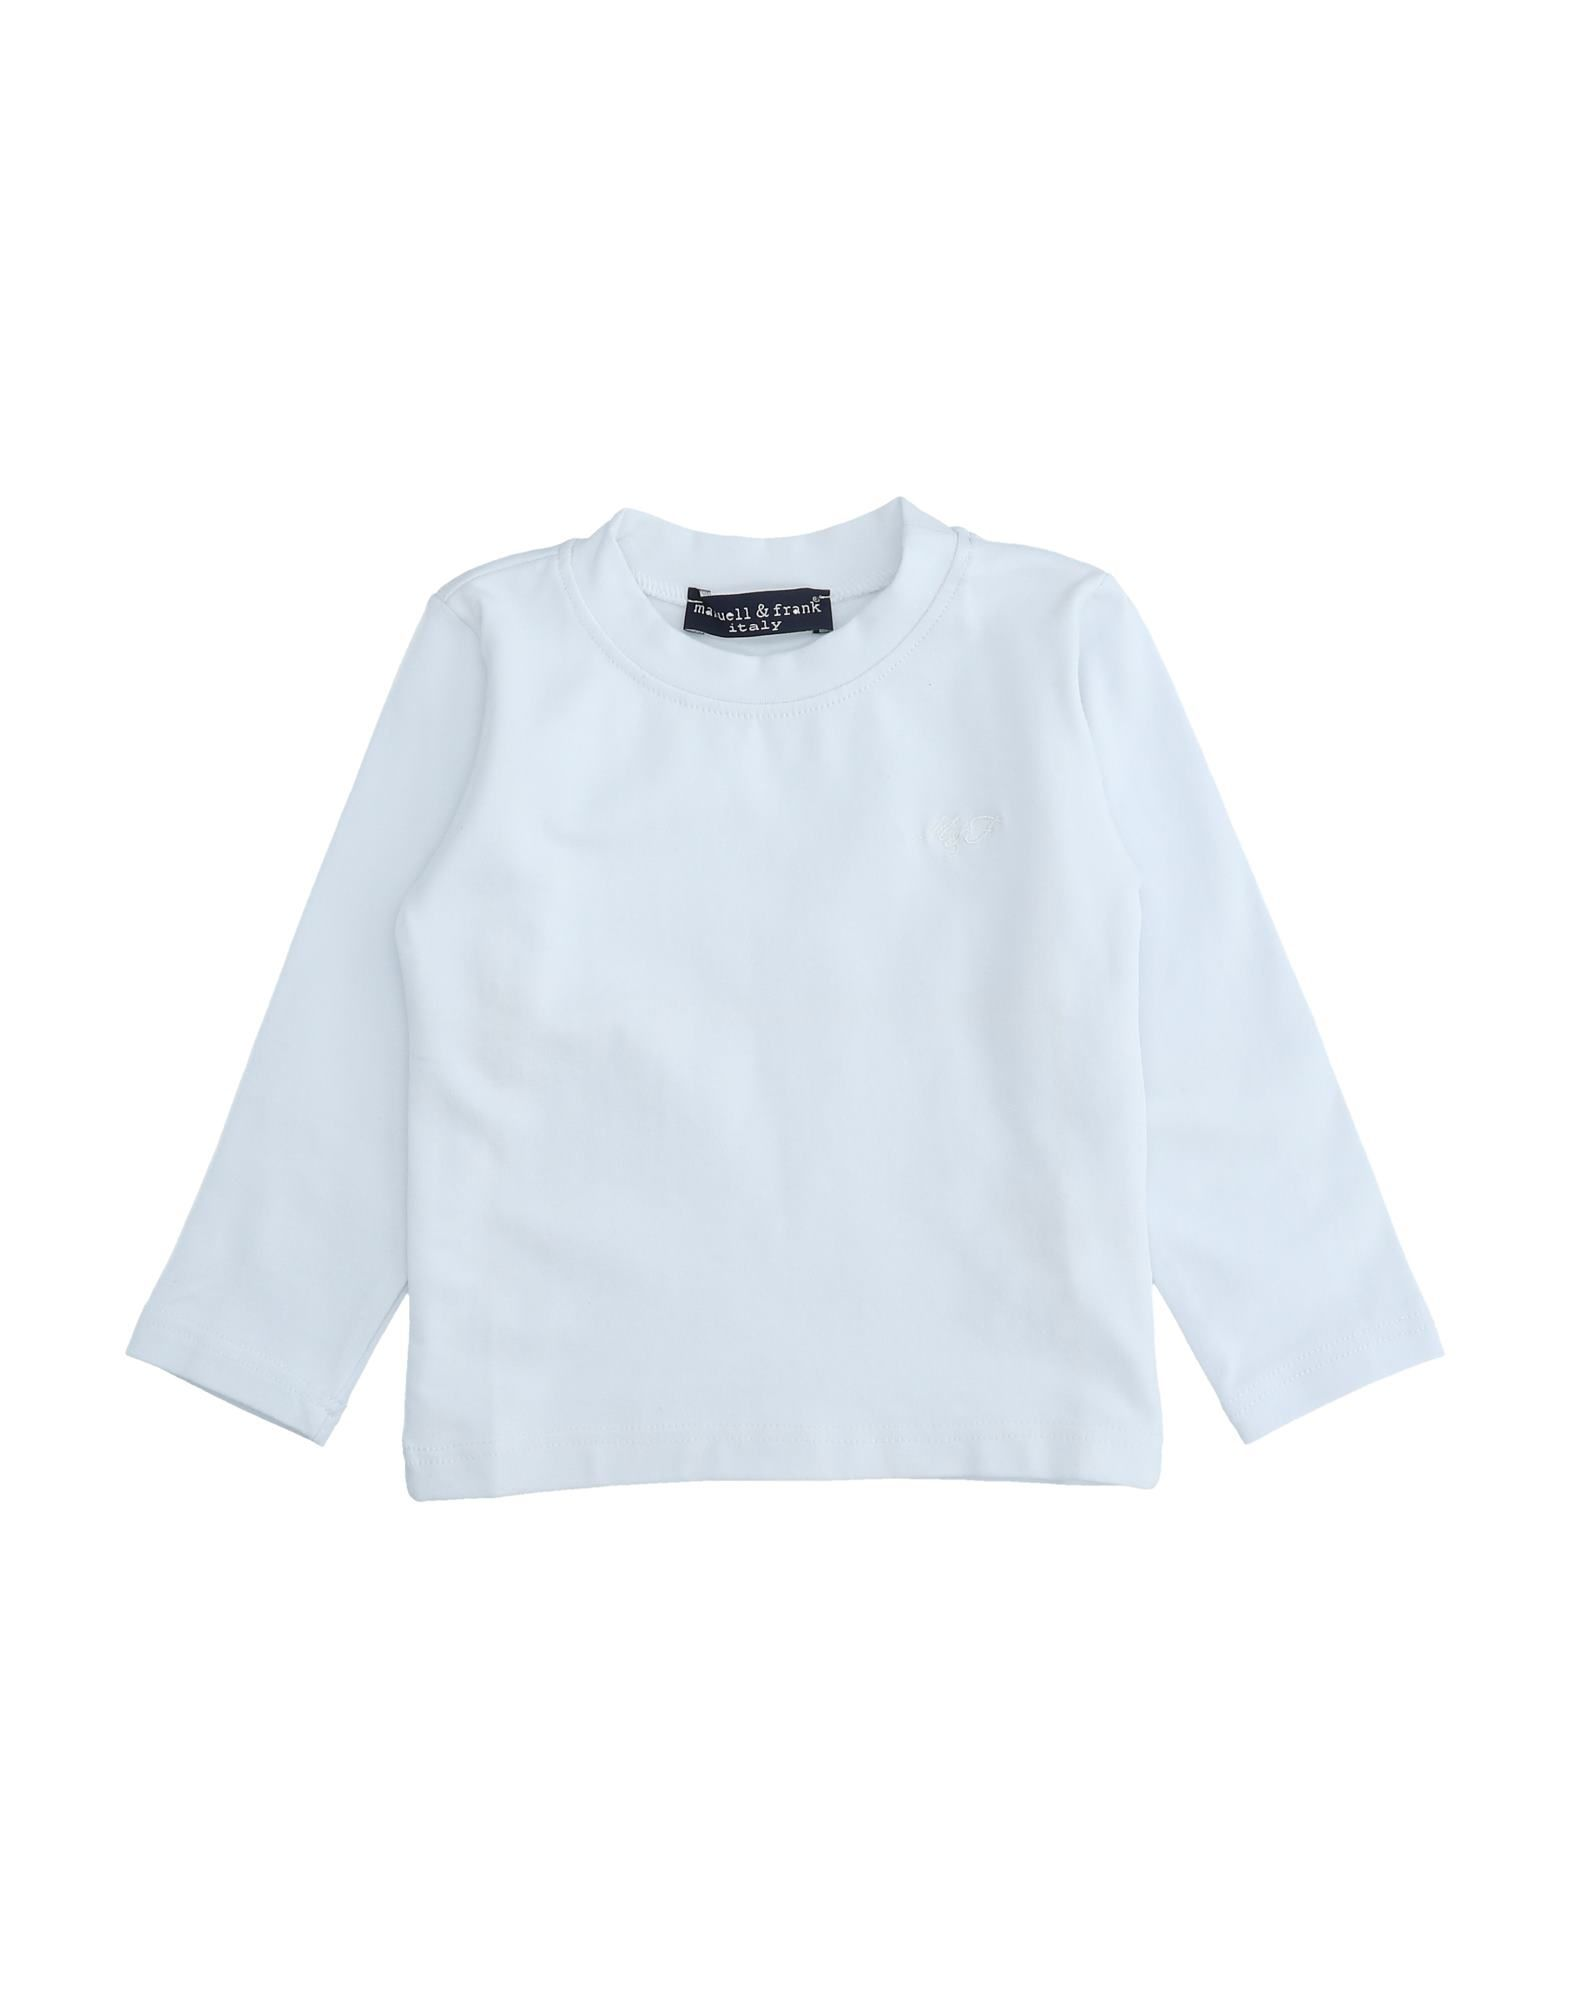 Manuell & Frank Kids' T-shirts In White